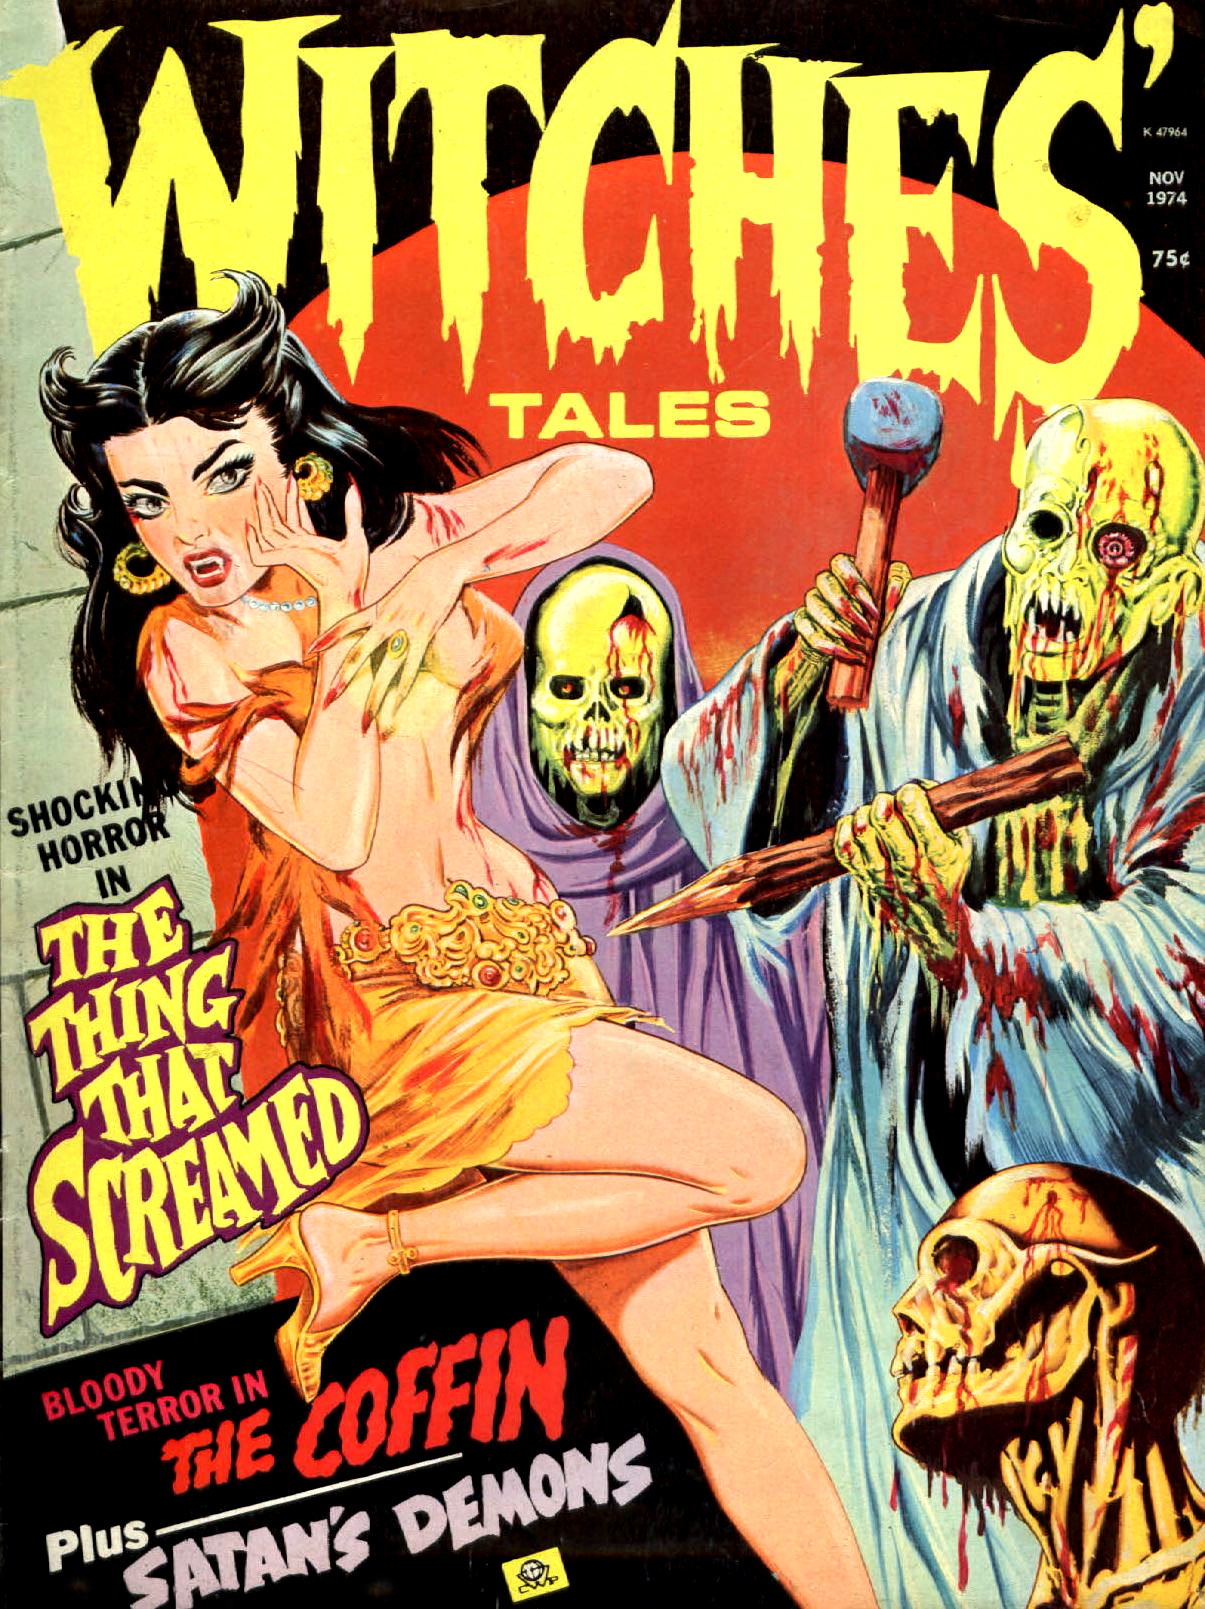 Witches' Tales Vol. 6 #6 (Eerie Publications 1974)